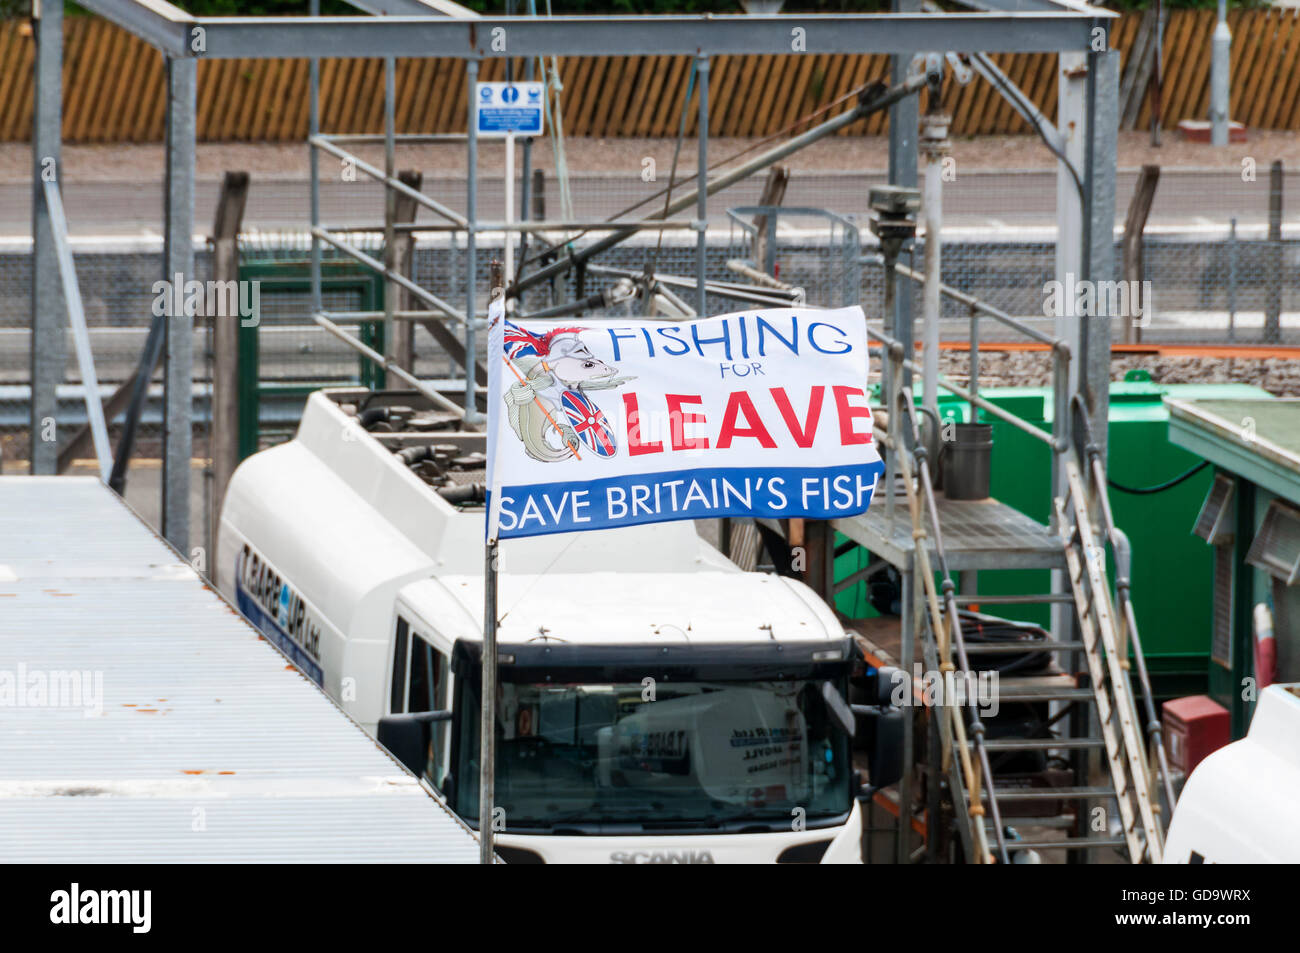 A Fishing for Leave flag displayed in Oban harbour, Scotland. Supporting exit from EU over Common Fisheries Policy. - Stock Image